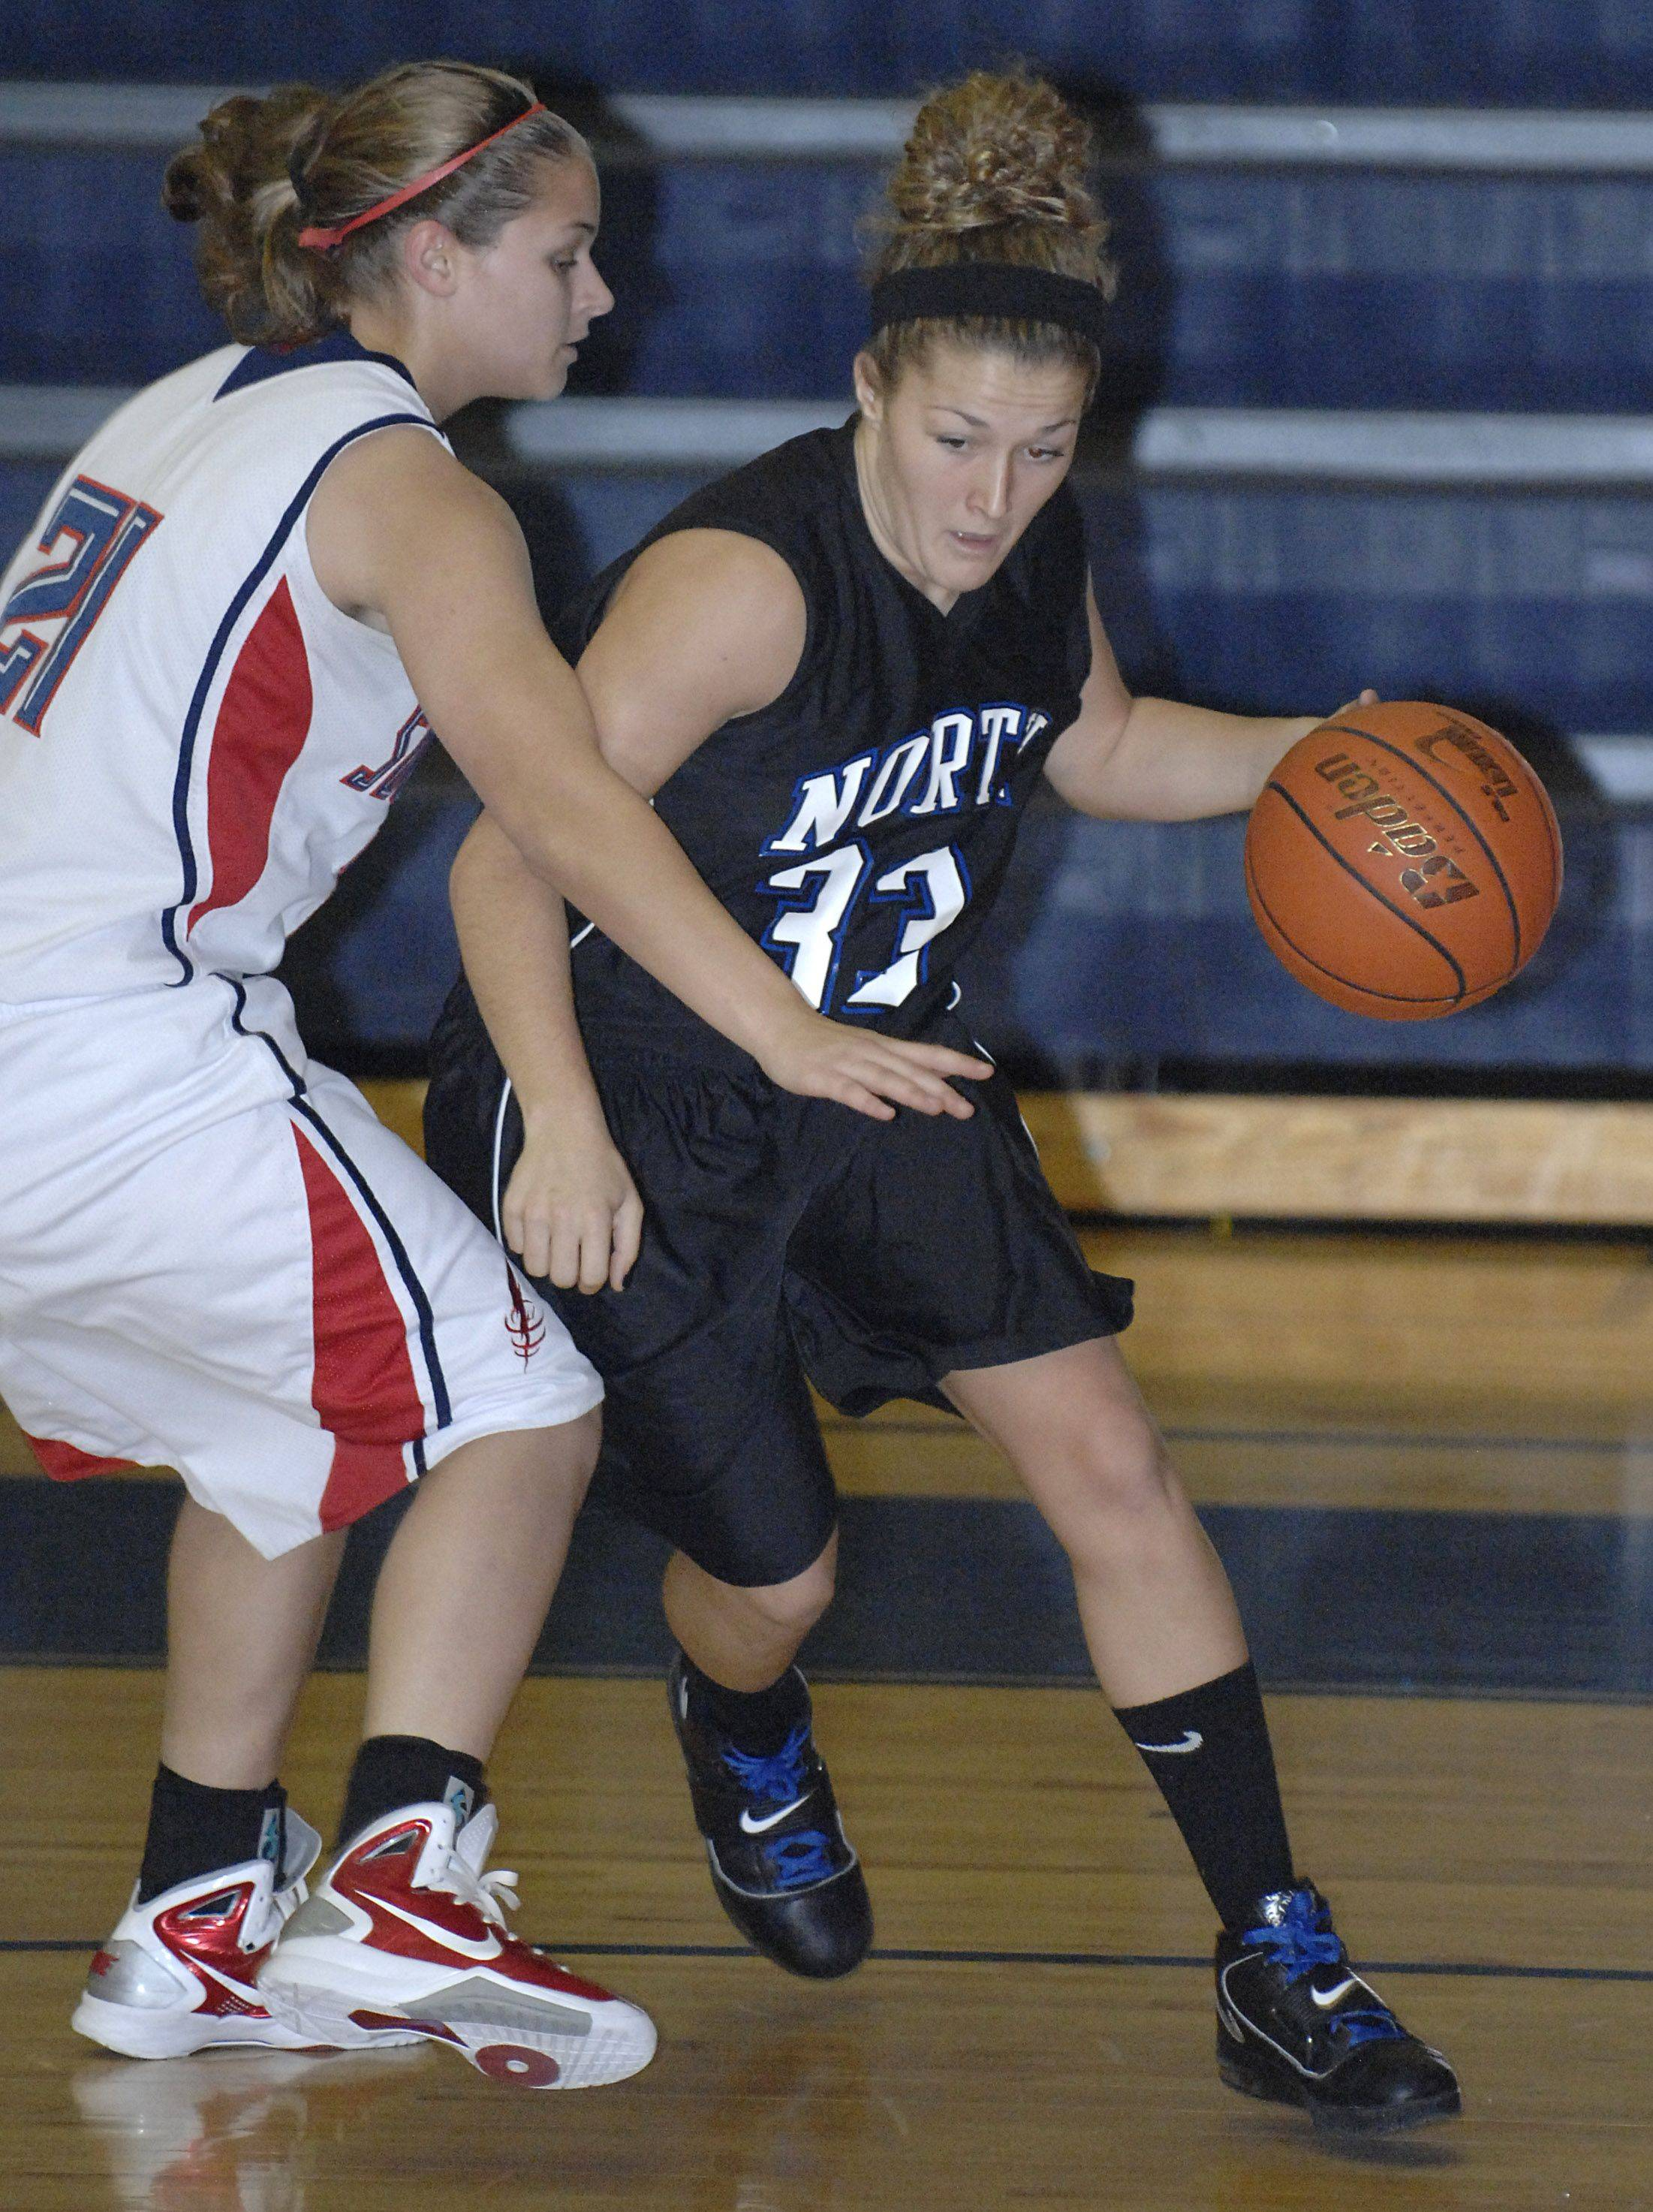 Laura Stoecker/lstoecker@dailyherald.com South Elgin's Amanda Behles attempts to block St. Charles North's Taylor Russell in the first quarter on Saturday, December 11.